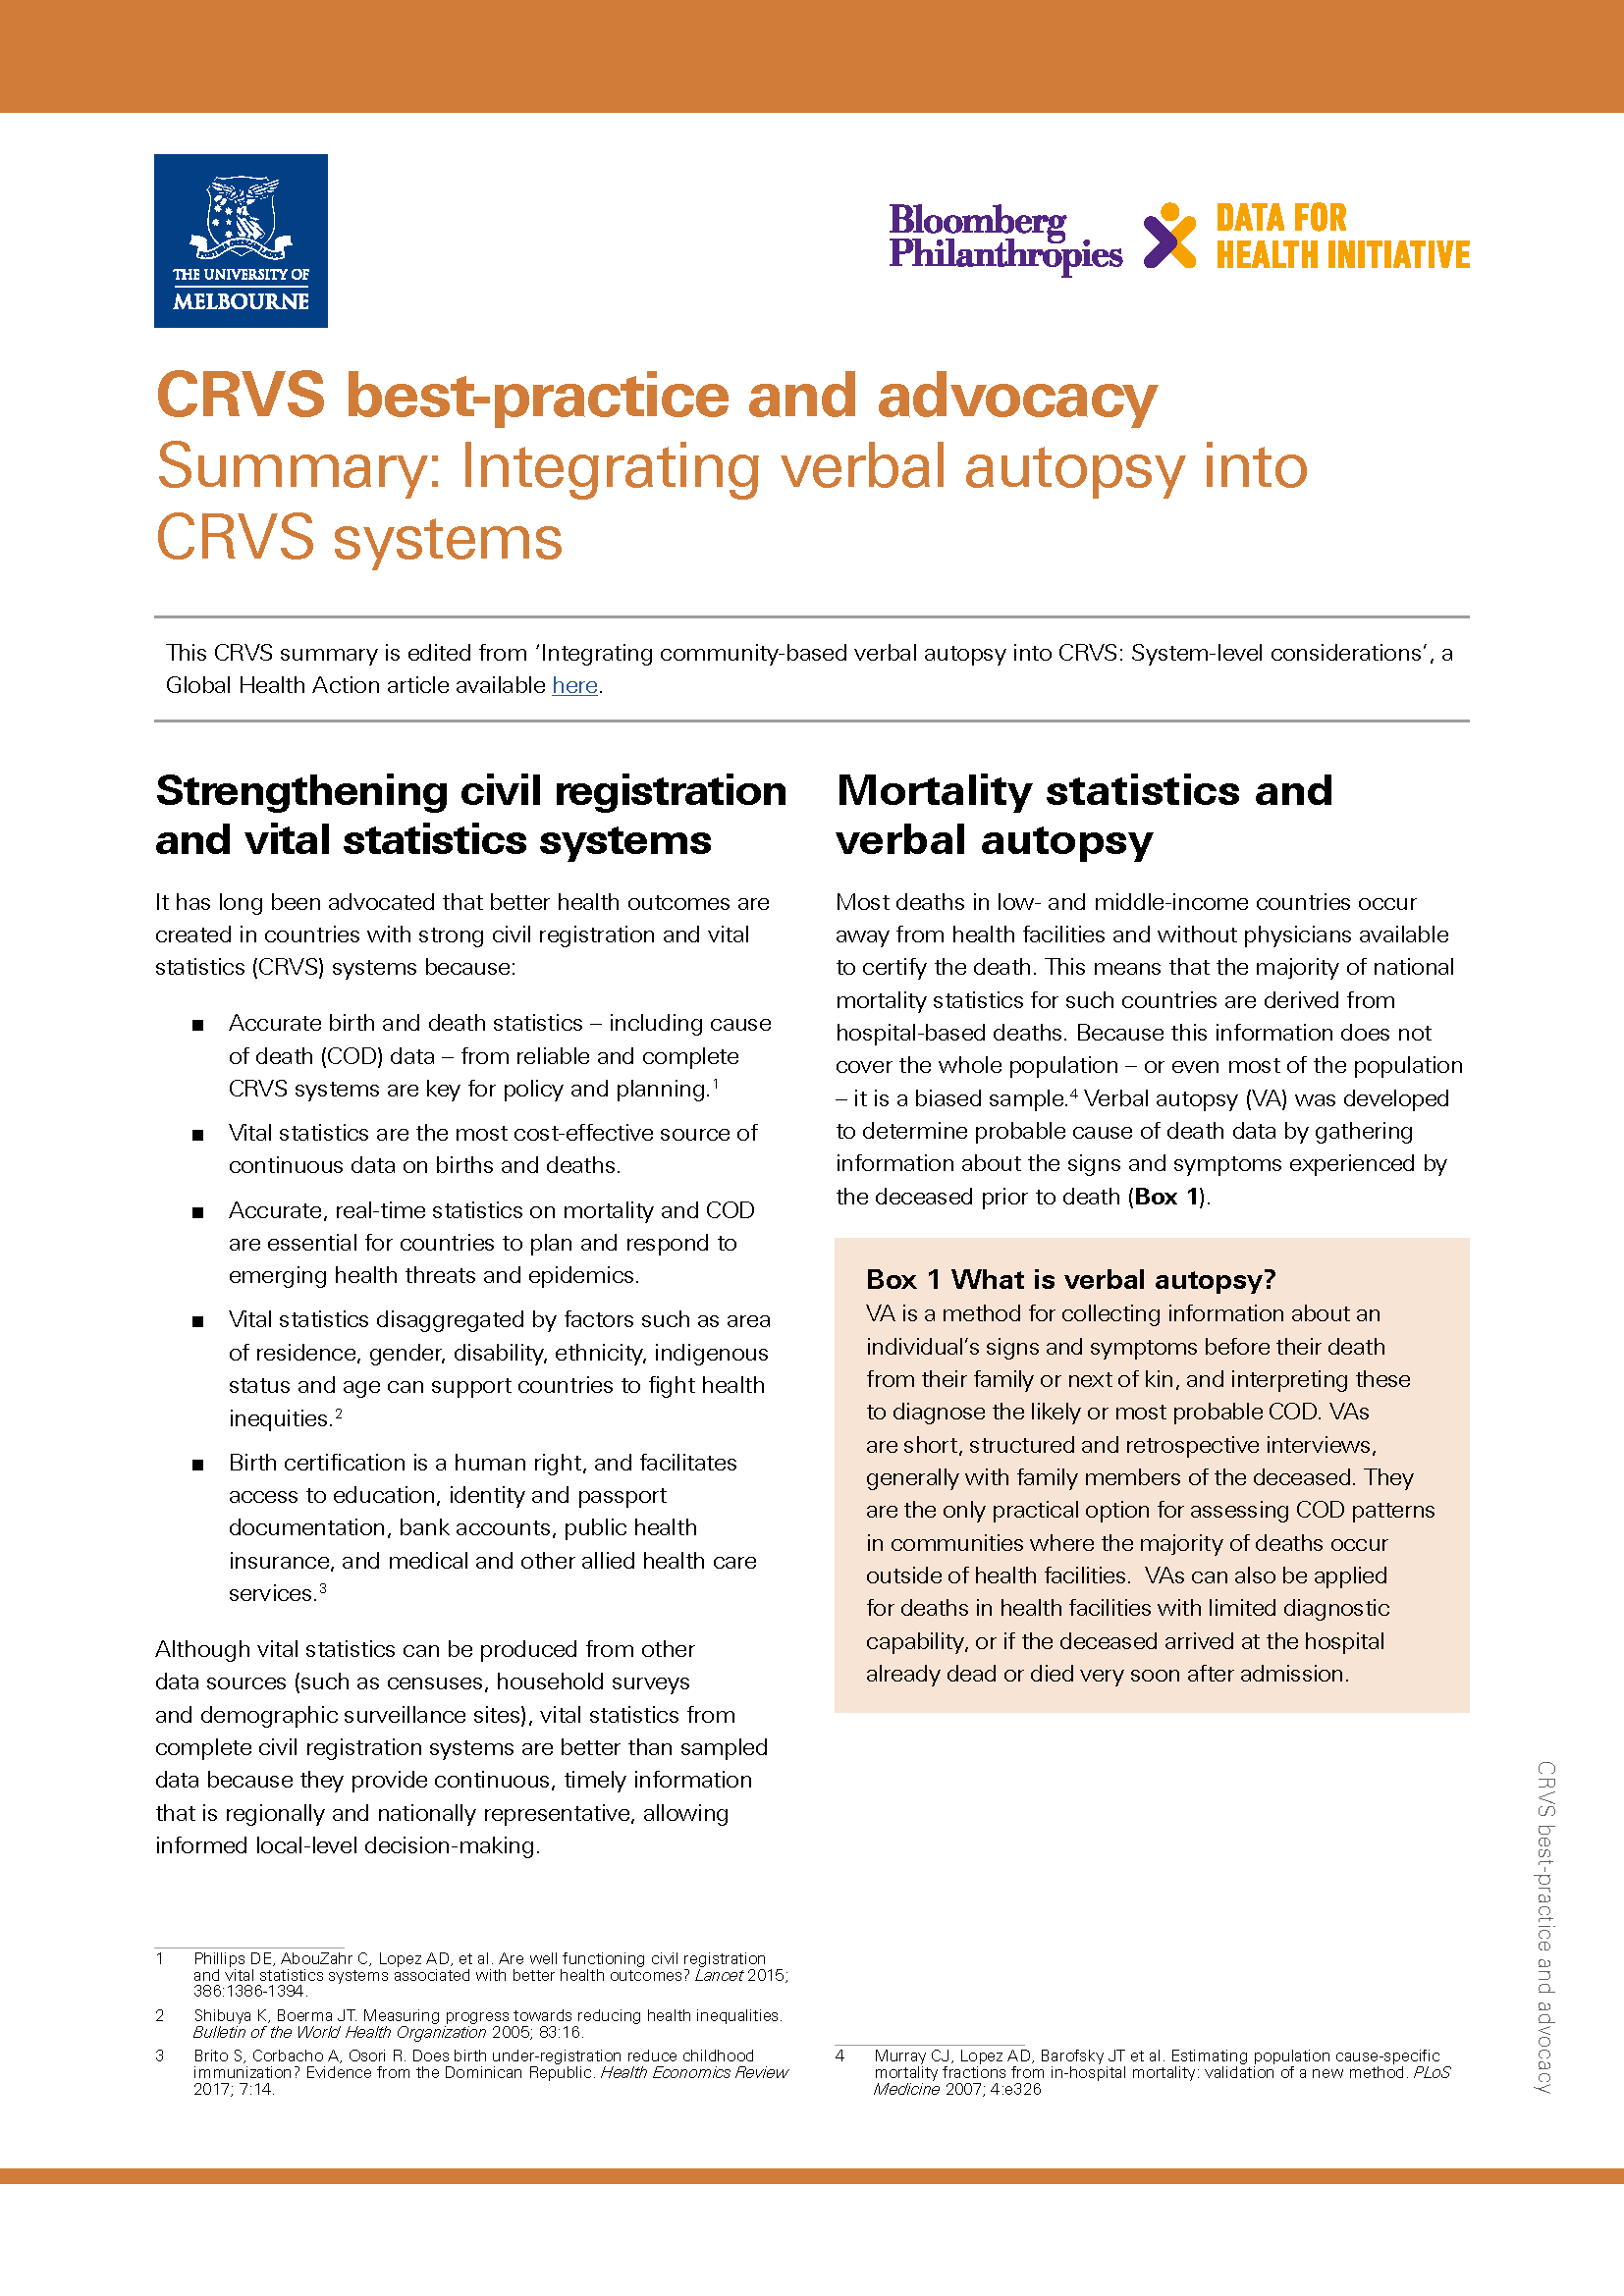 Summary: Integrating verbal autopsy into CRVS systems thumbnail